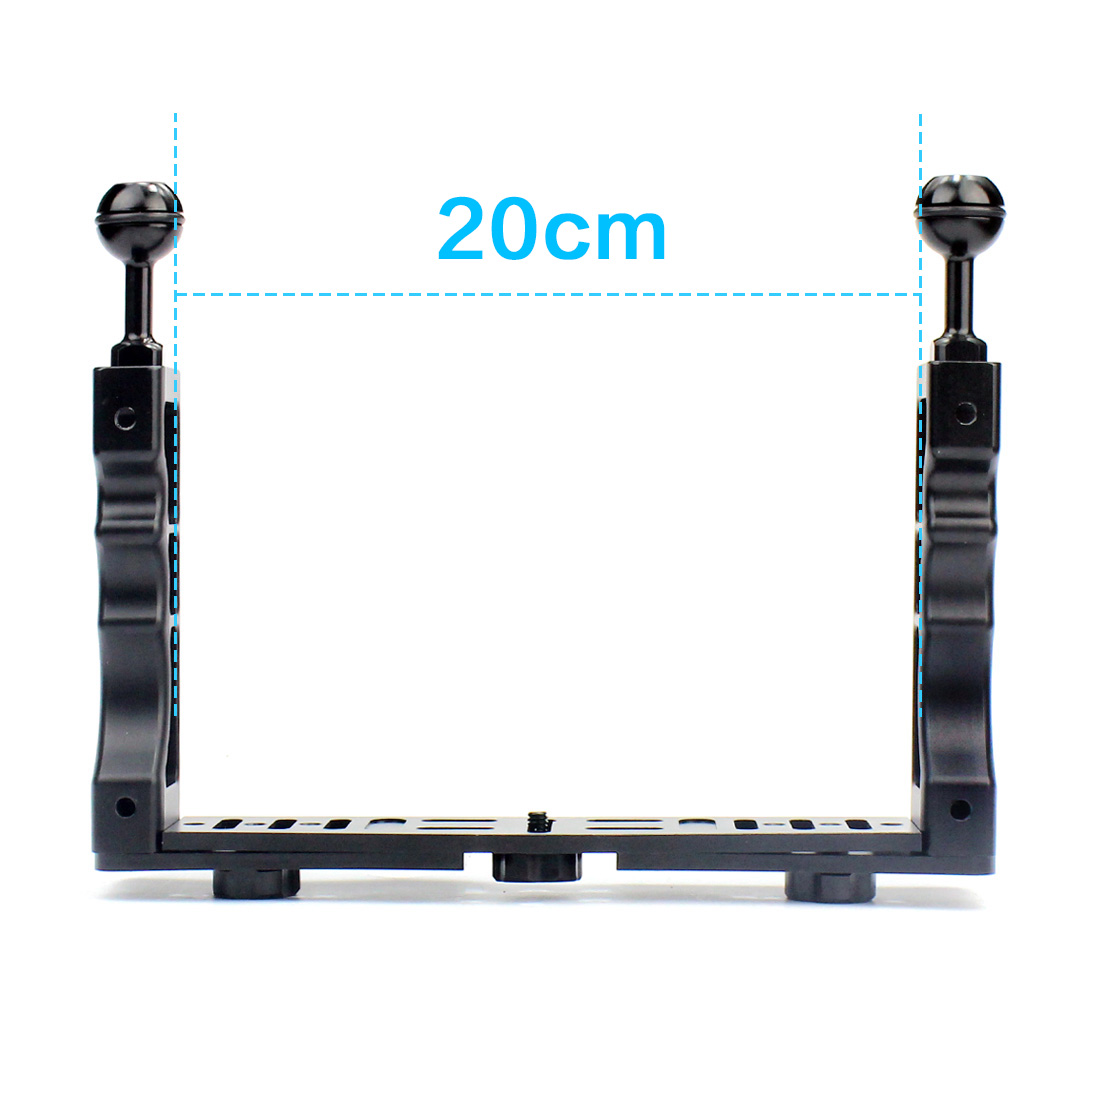 Aluminum Alloy Underwater Waterproof Shell Tray Housings Arm for Gopro Action Camera Holder Double Grip Dive Spare Parts все цены